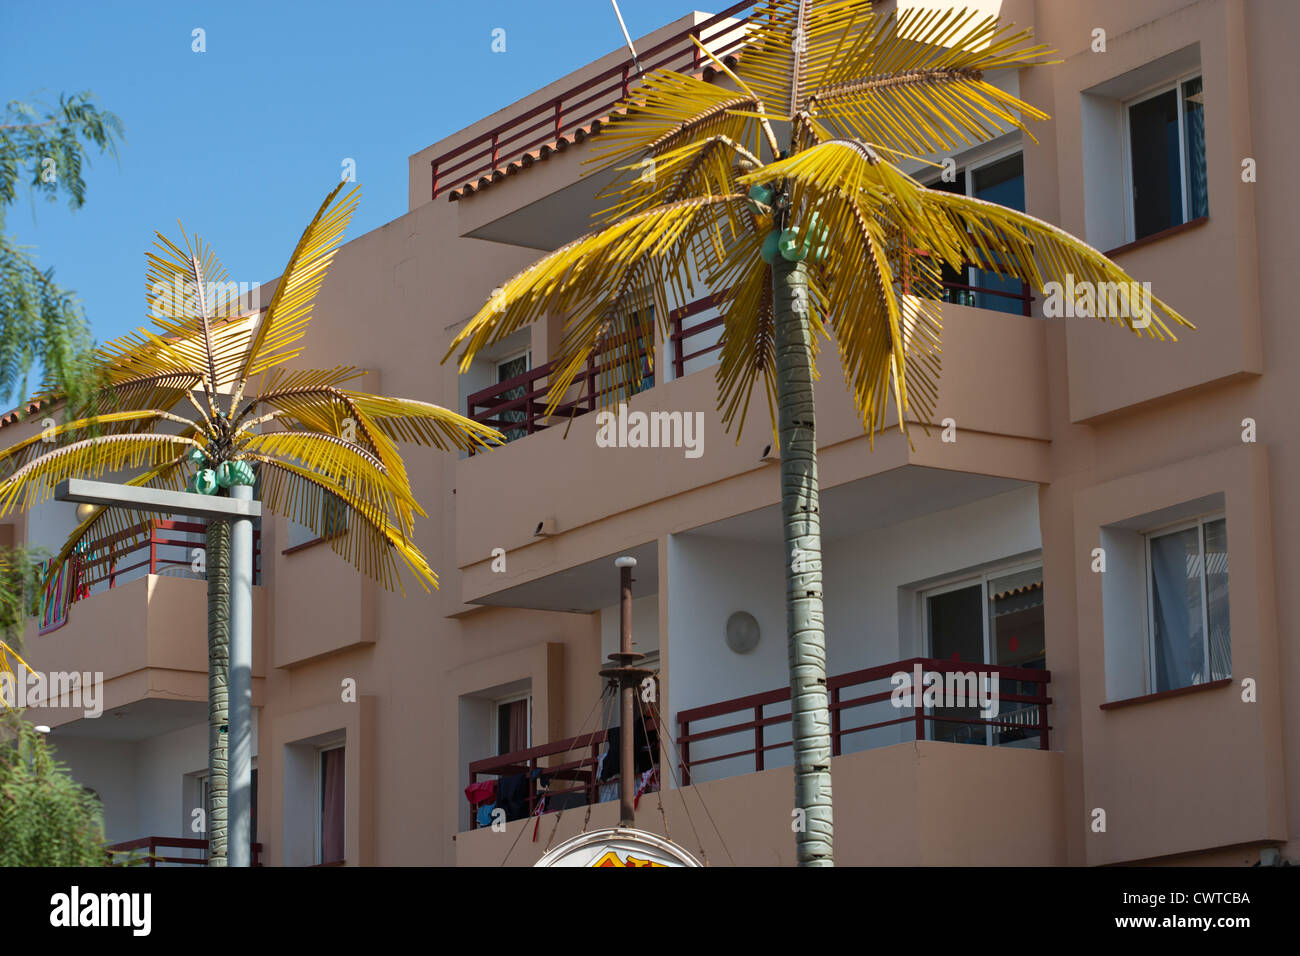 Plastic palm trees outside a tourist apartment block in Ibiza island, Spain. - Stock Image